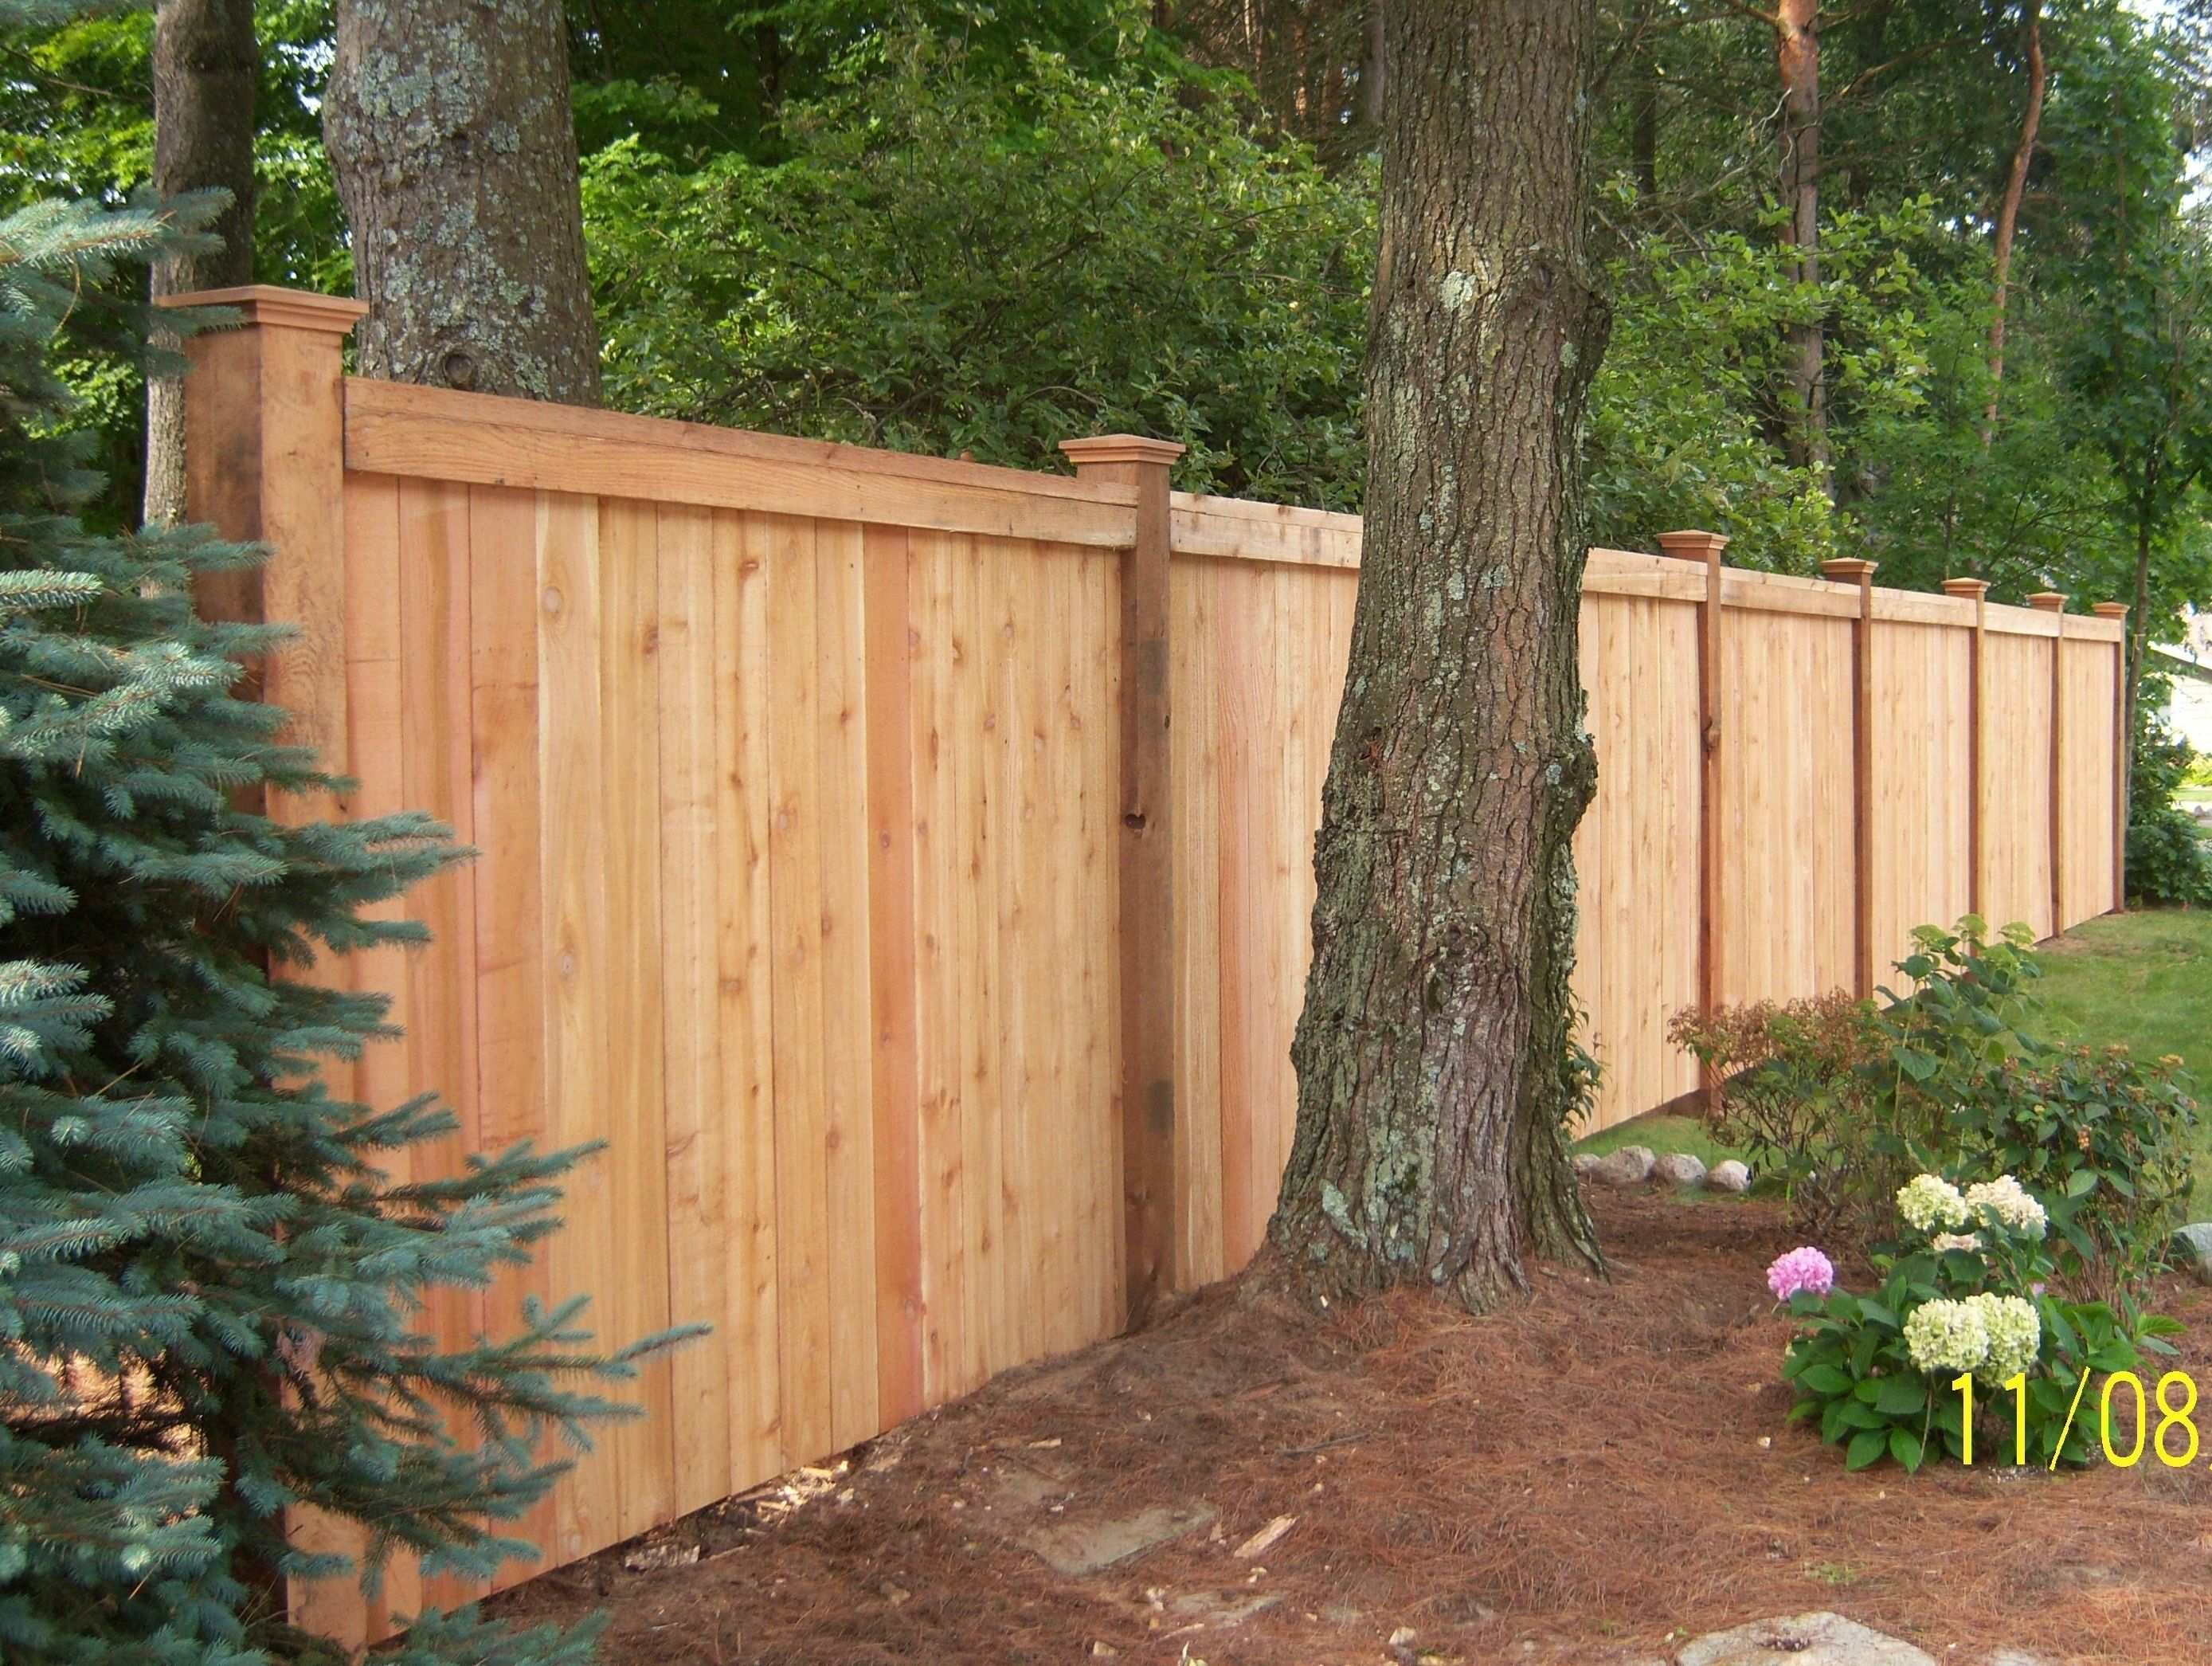 Custom Wood Privacy Fence Backyard Fences Fence Design Wood